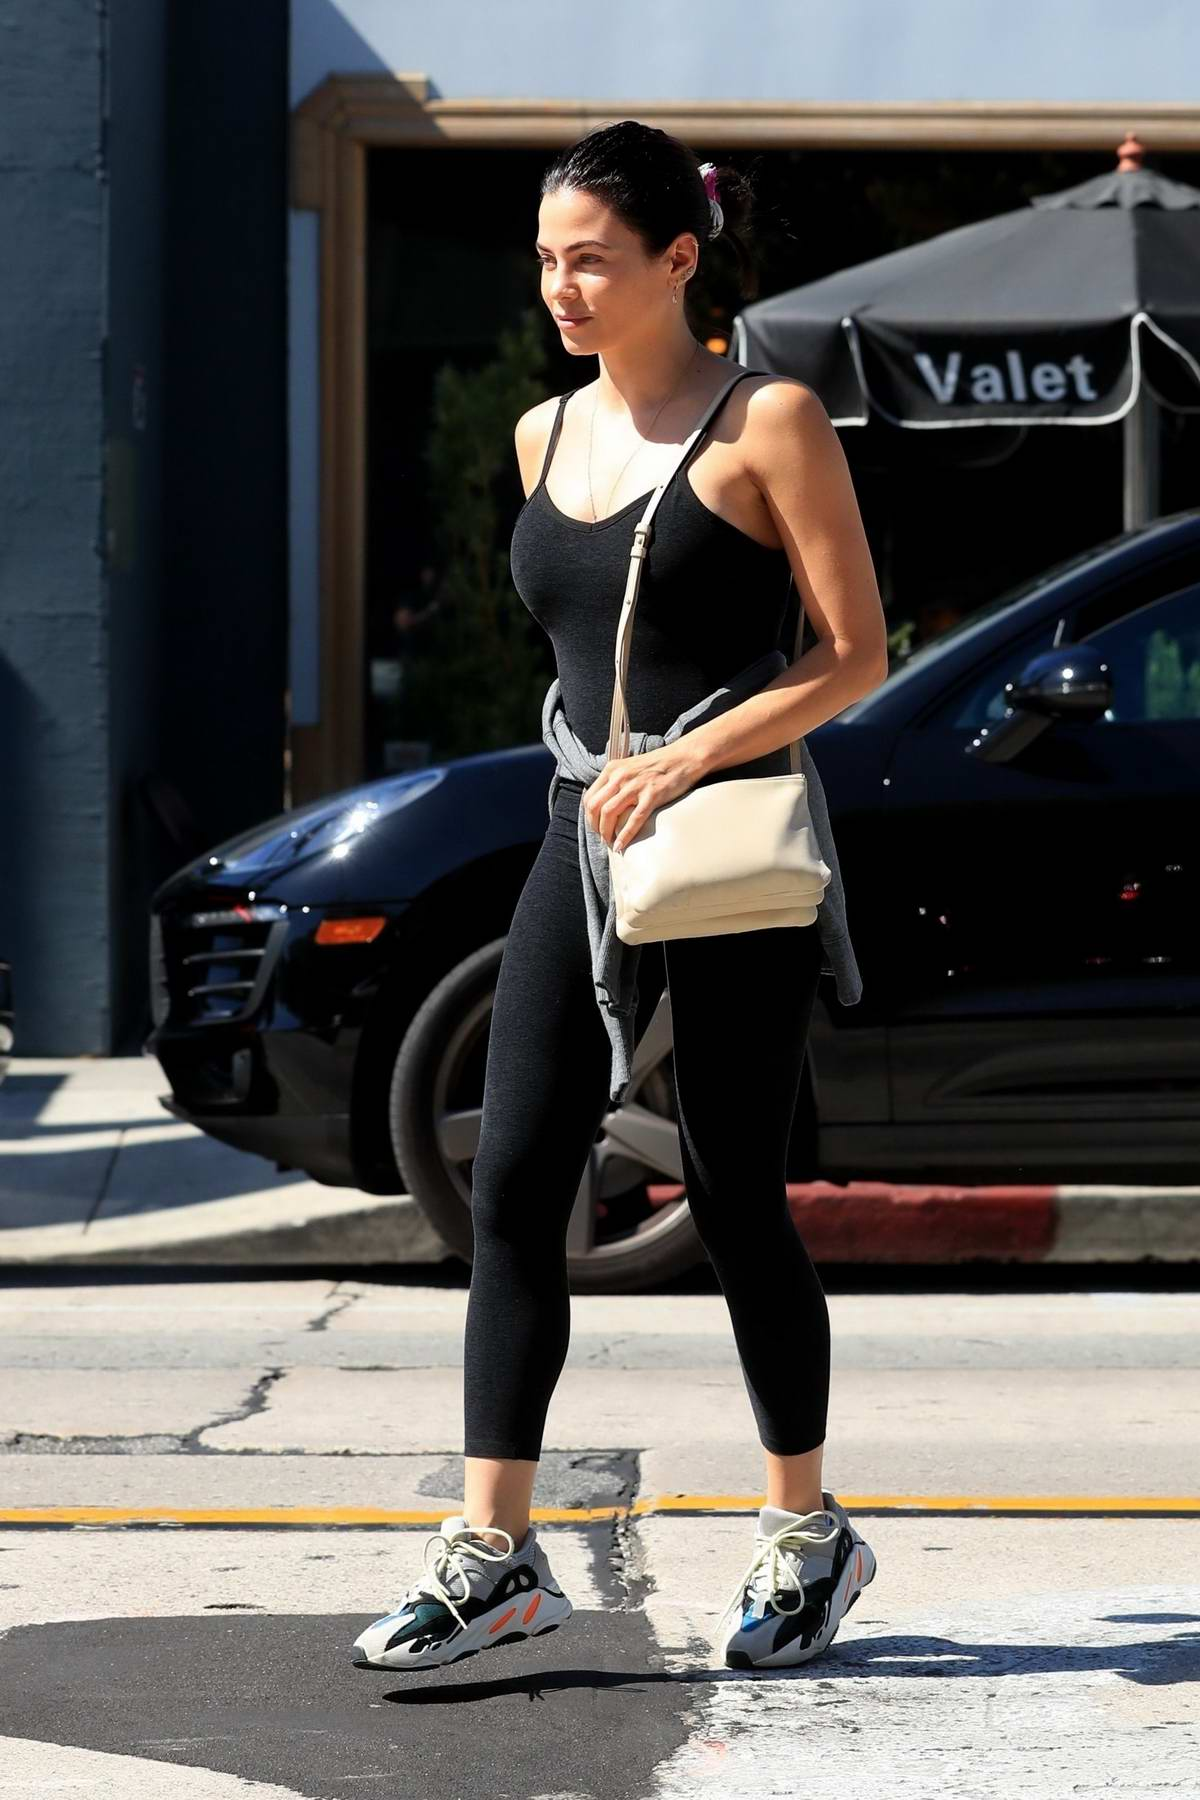 Jenna Dewan shows off her fit figure in dark leggings and a matching tank top as she leaves Urth Caffe in Los Angeles